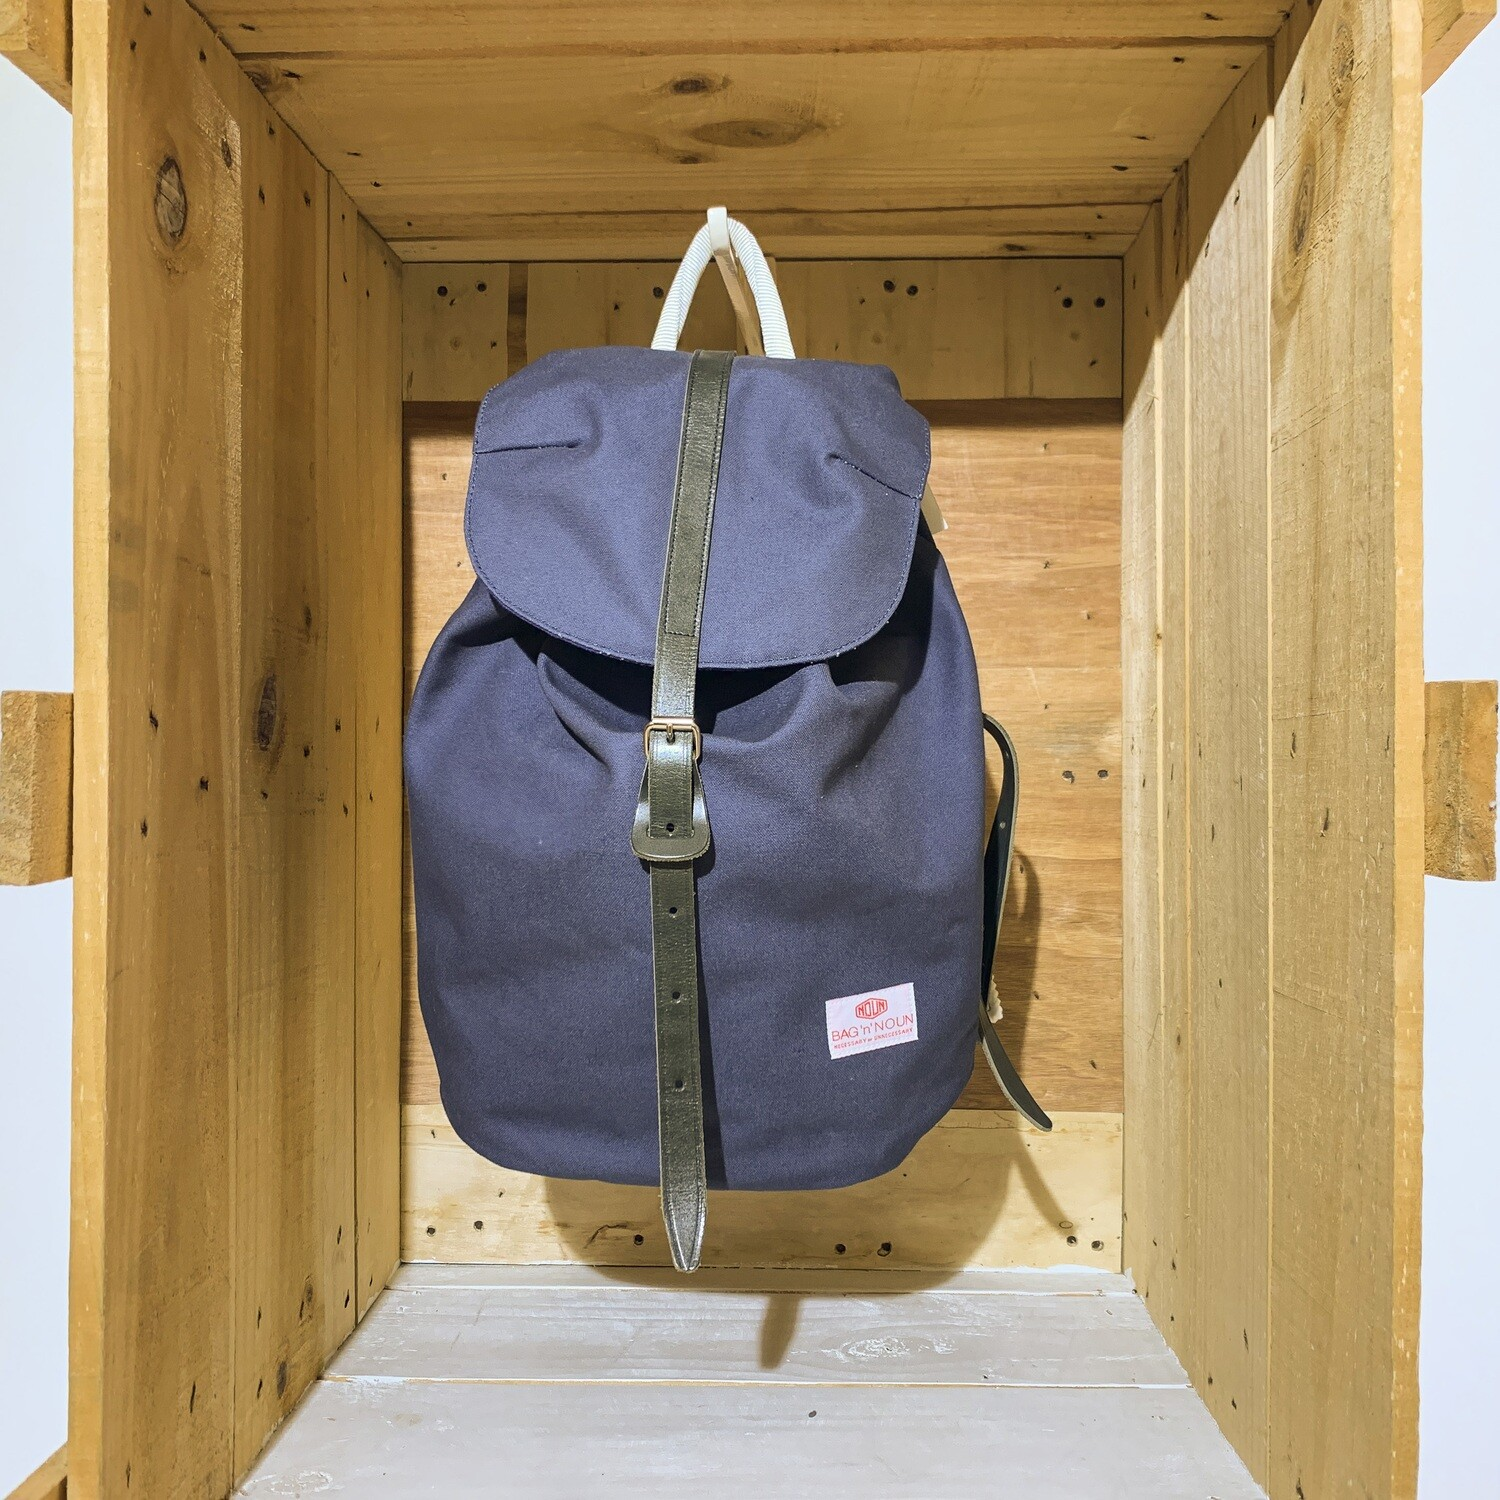 Bag'n'Noun – Quality Napsac Canvas School